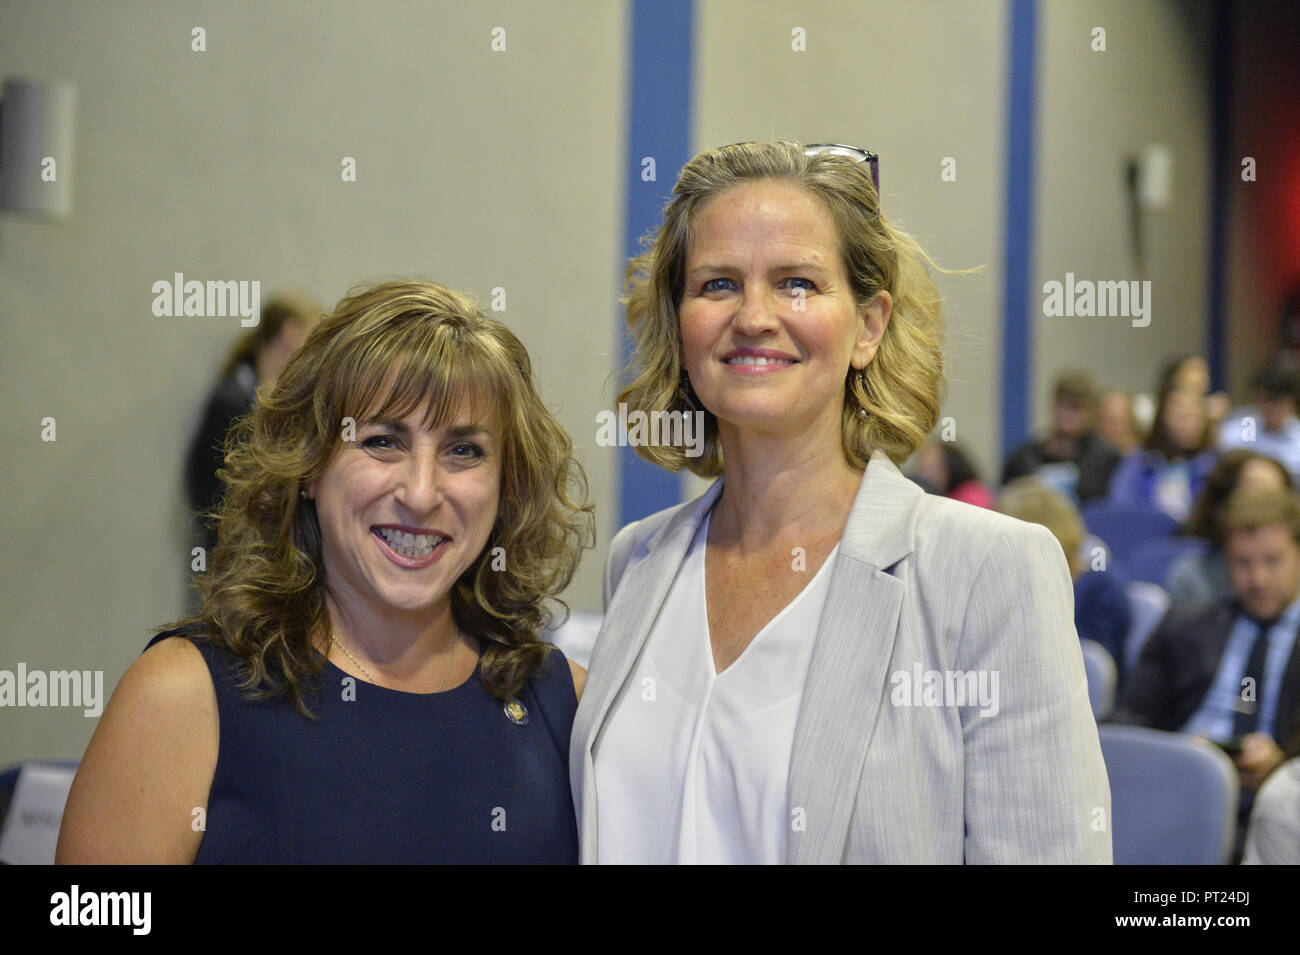 Hempstead, New York, USA. 5th Oct, 2018. L-R, Democrats New York Assemblywoman District 9 CHRISTINE PELLEGRINO and Nassau County Executive LAURA CURRAN pose before start of U.S. Sen. Gillibrand's Town Hall Meeting at Hofstra University on Long Island. Credit: Ann Parry/ZUMA Wire/Alamy Live News - Stock Image